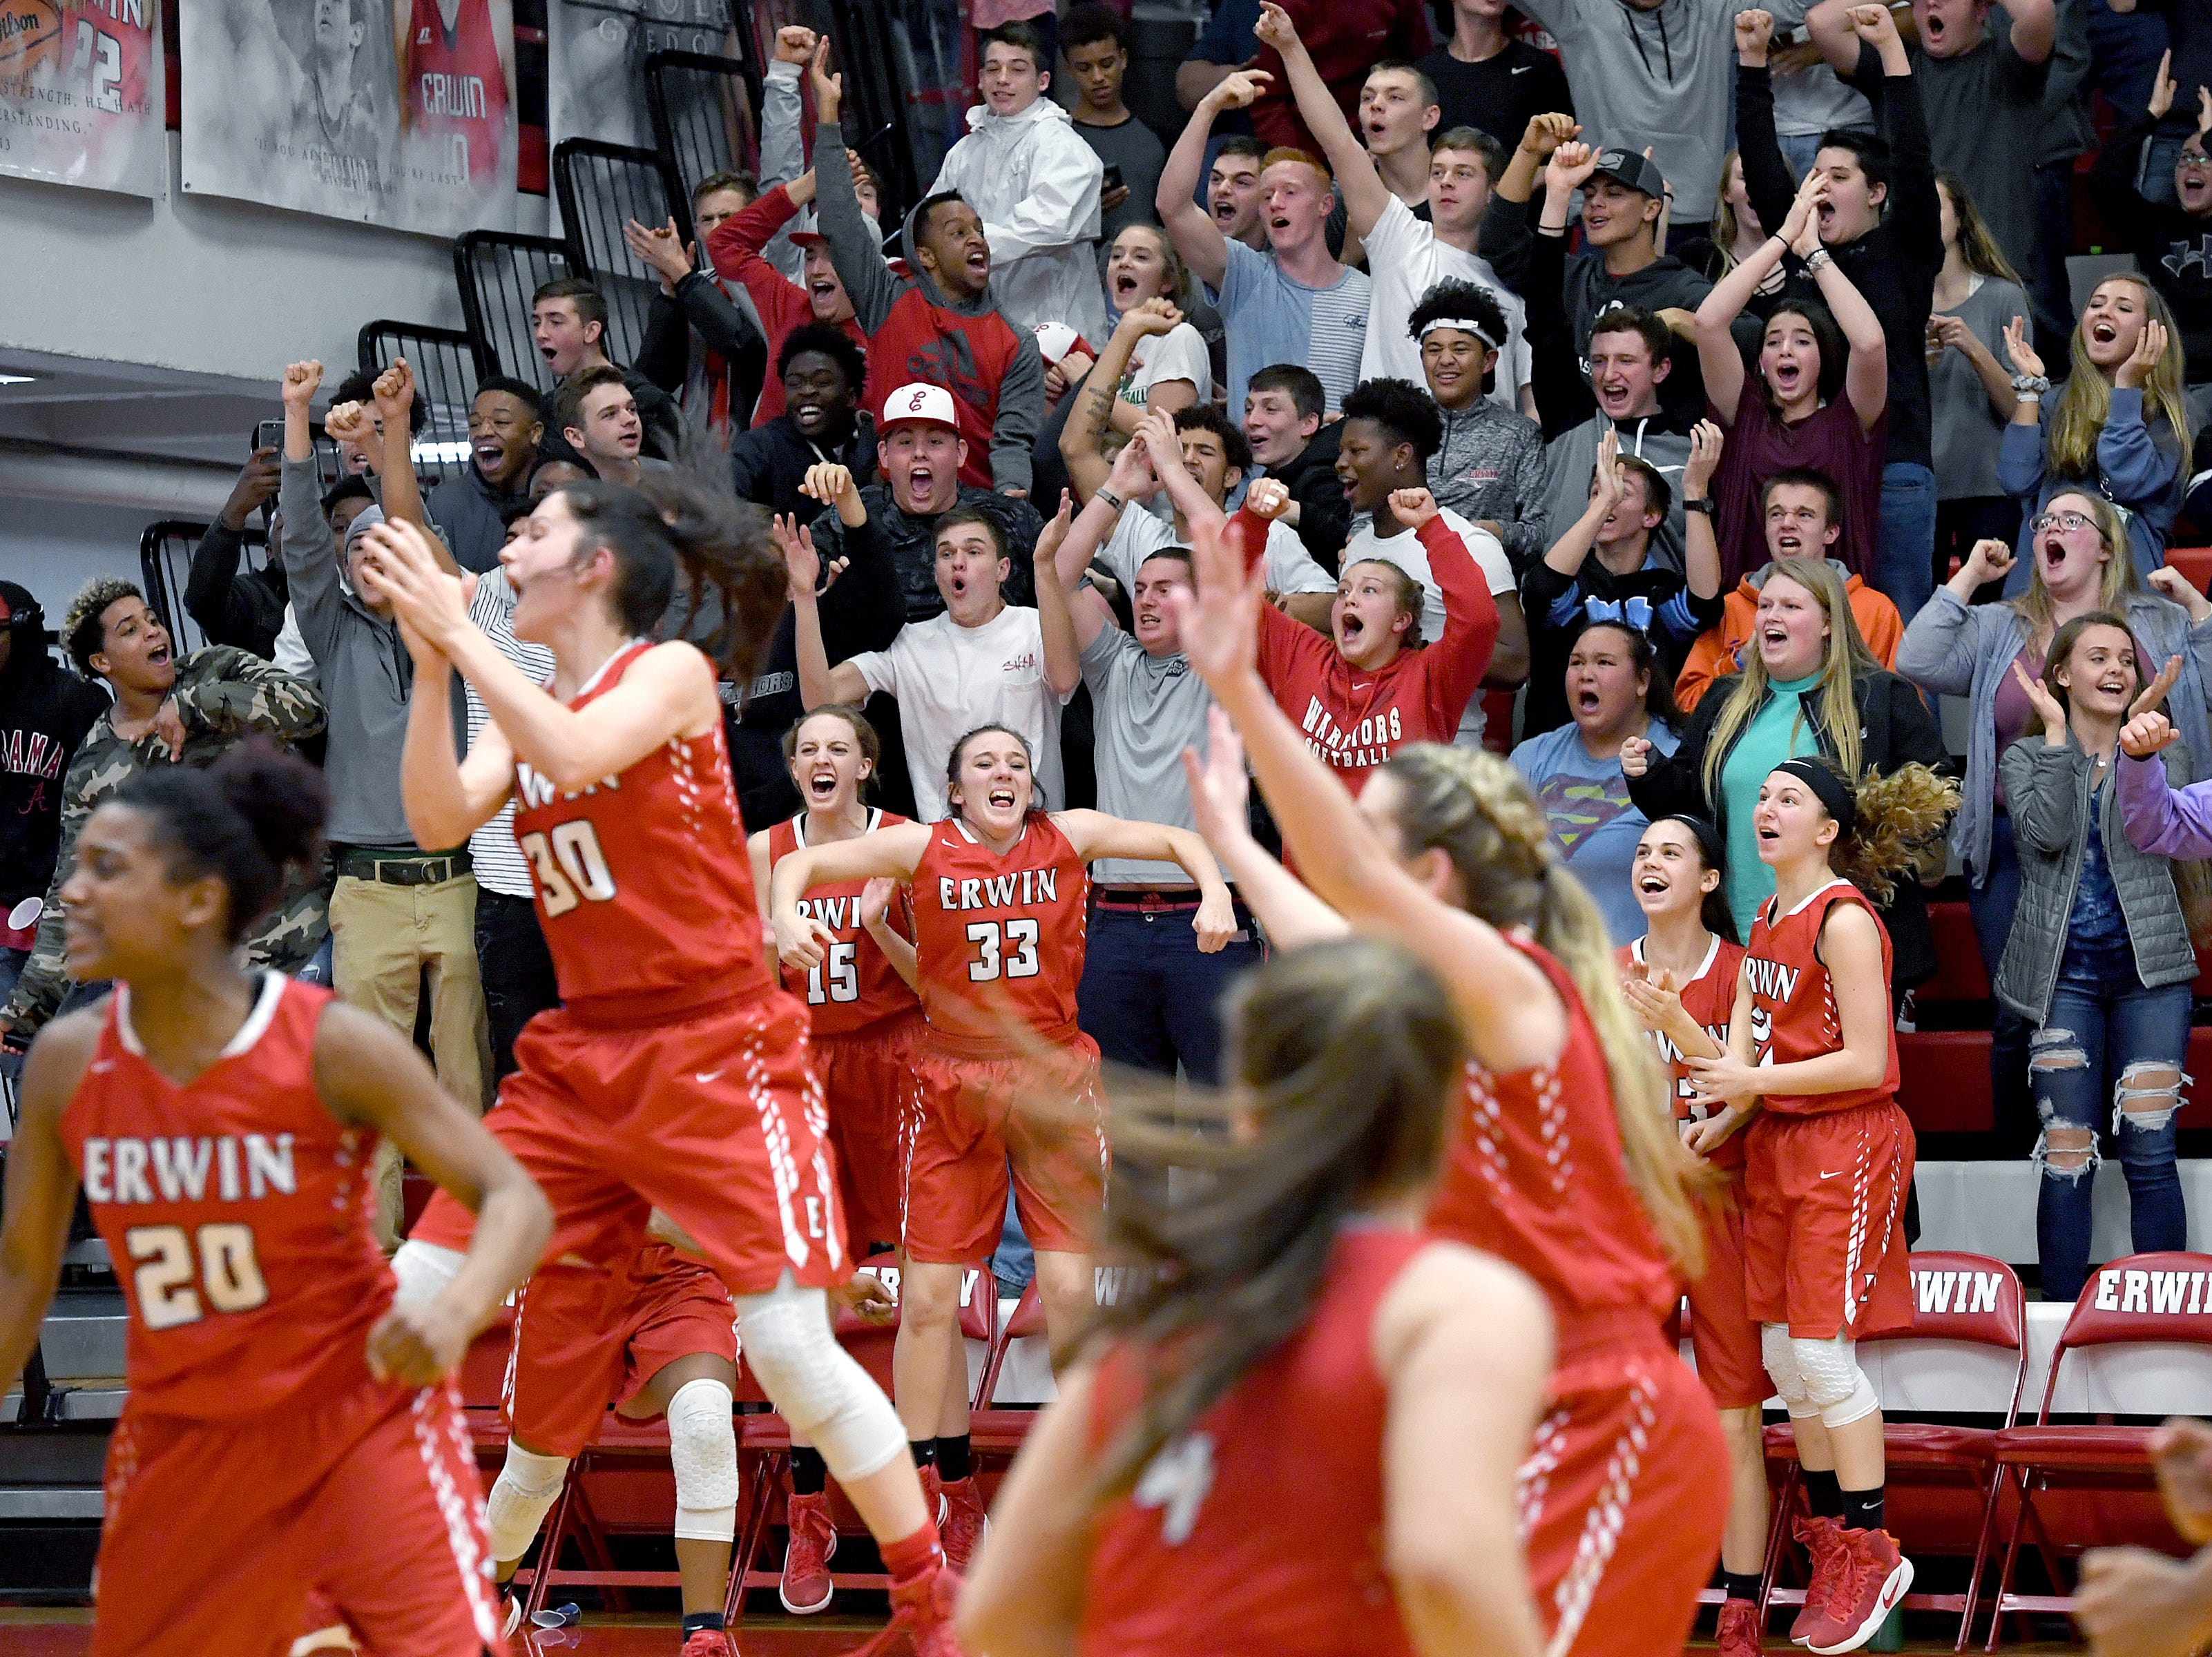 Erwin players and fans celebrate a buzzer-beater that gave the Warriors a 45-43 win over Tuscola in the championship game of the WMAC tournament at Erwin High School on Friday, Feb. 16, 2018.